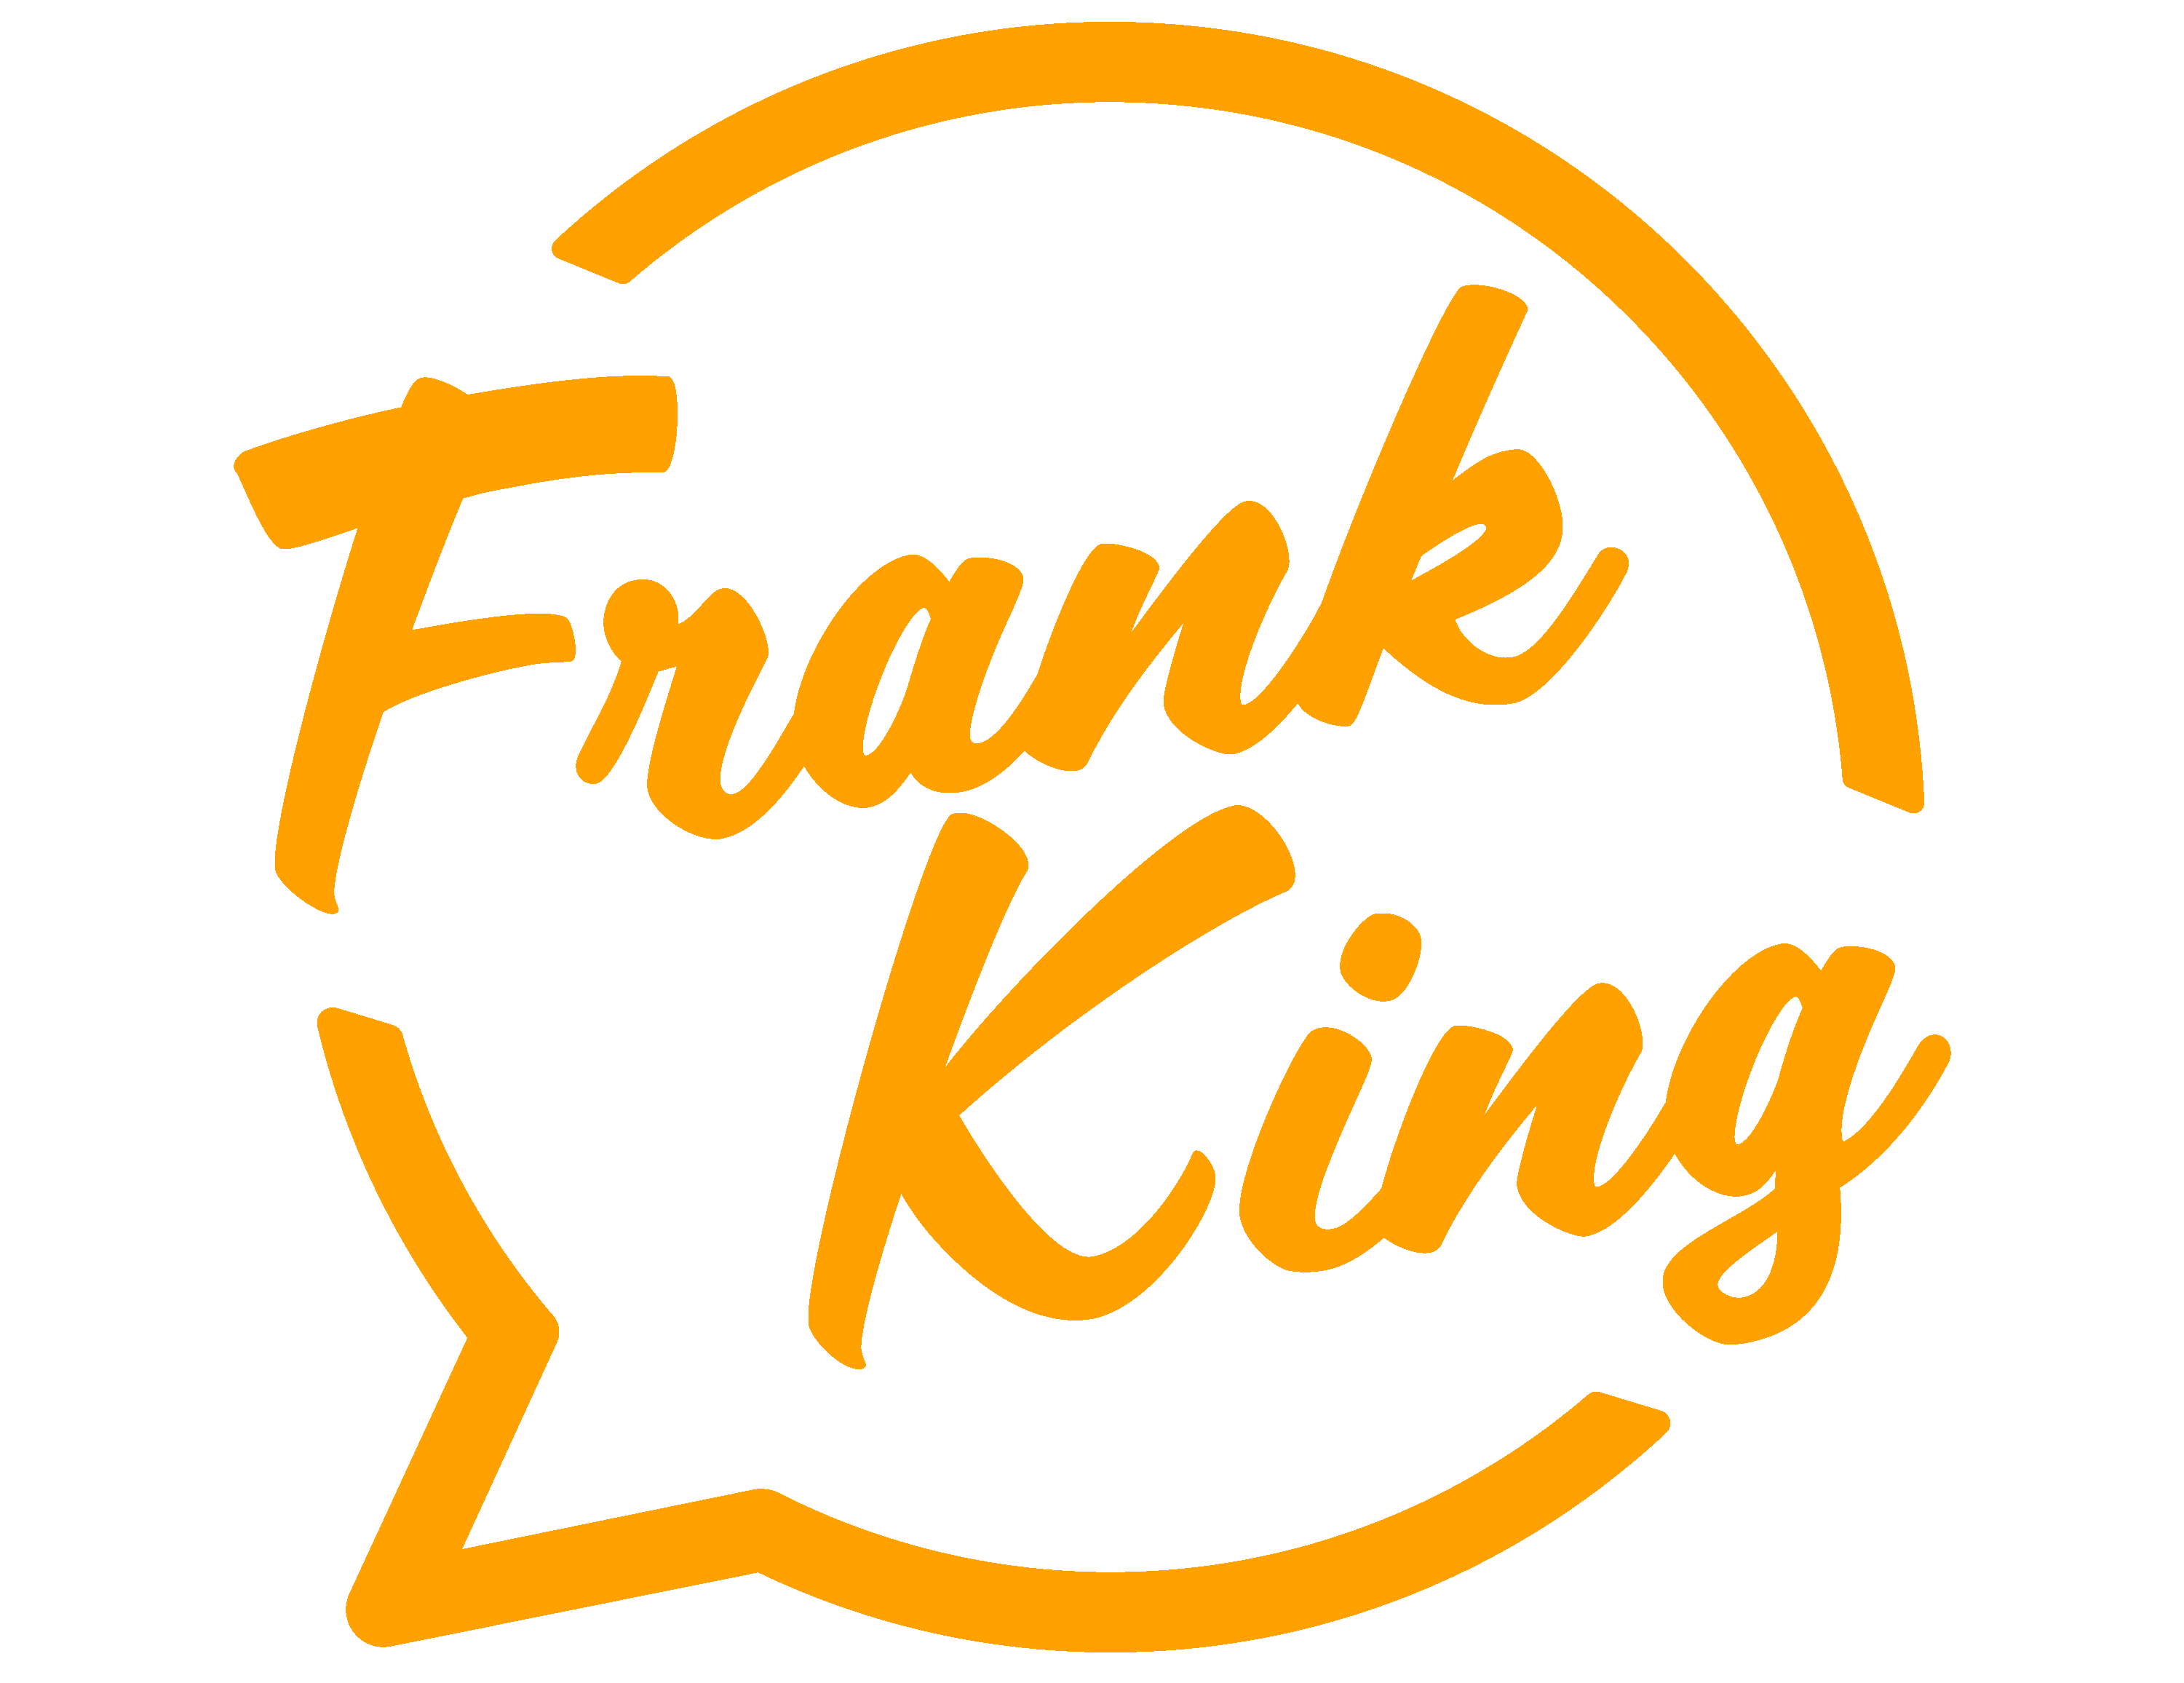 Frank King | The Mental Health Comedian